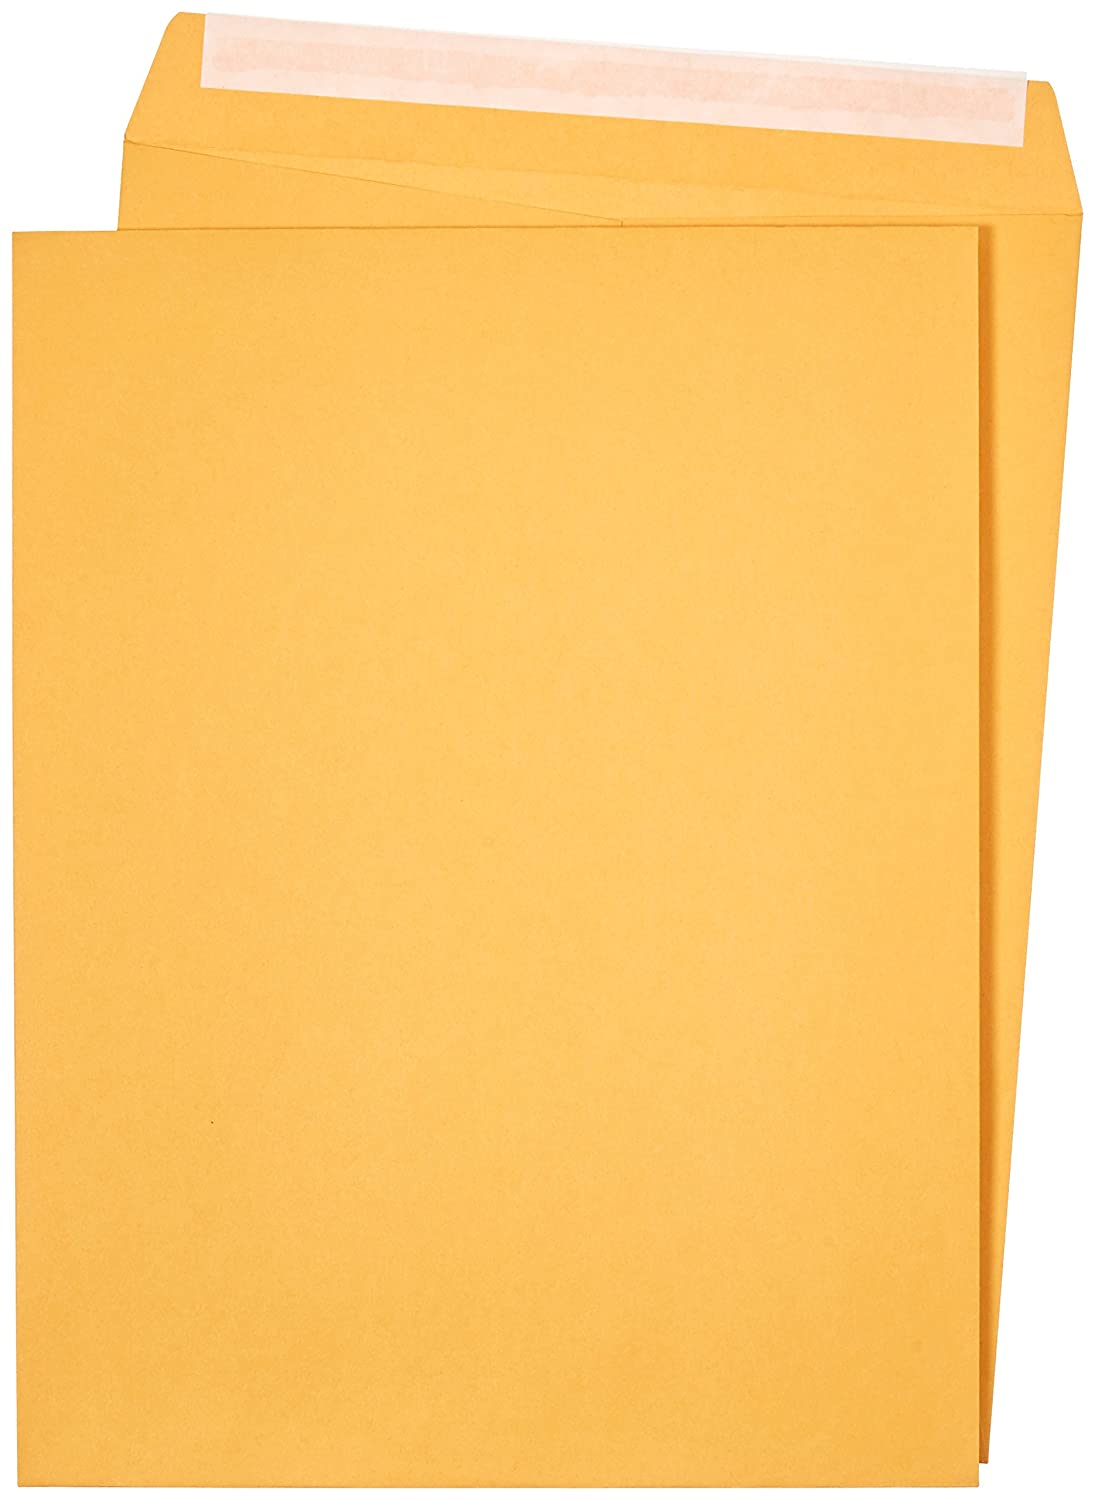 AmazonBasics Catalog Envelopes, Peel & Seal, 10 x 13 Inch, Brown Kraft, 100-Pack